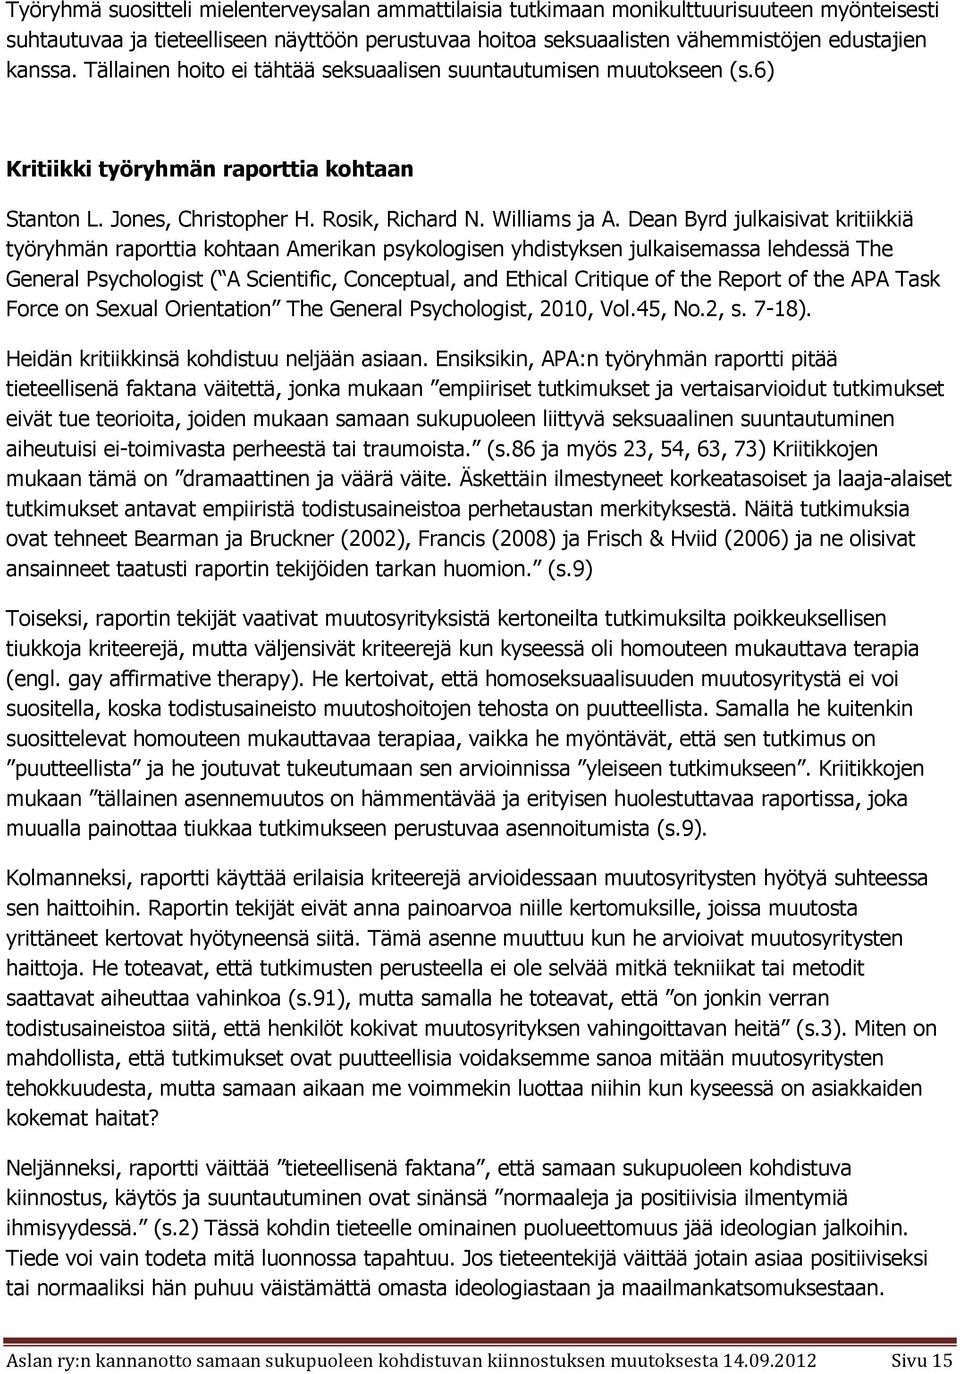 Dean Byrd julkaisivat kritiikkiä työryhmän raporttia kohtaan Amerikan psykologisen yhdistyksen julkaisemassa lehdessä The General Psychologist ( A Scientific, Conceptual, and Ethical Critique of the